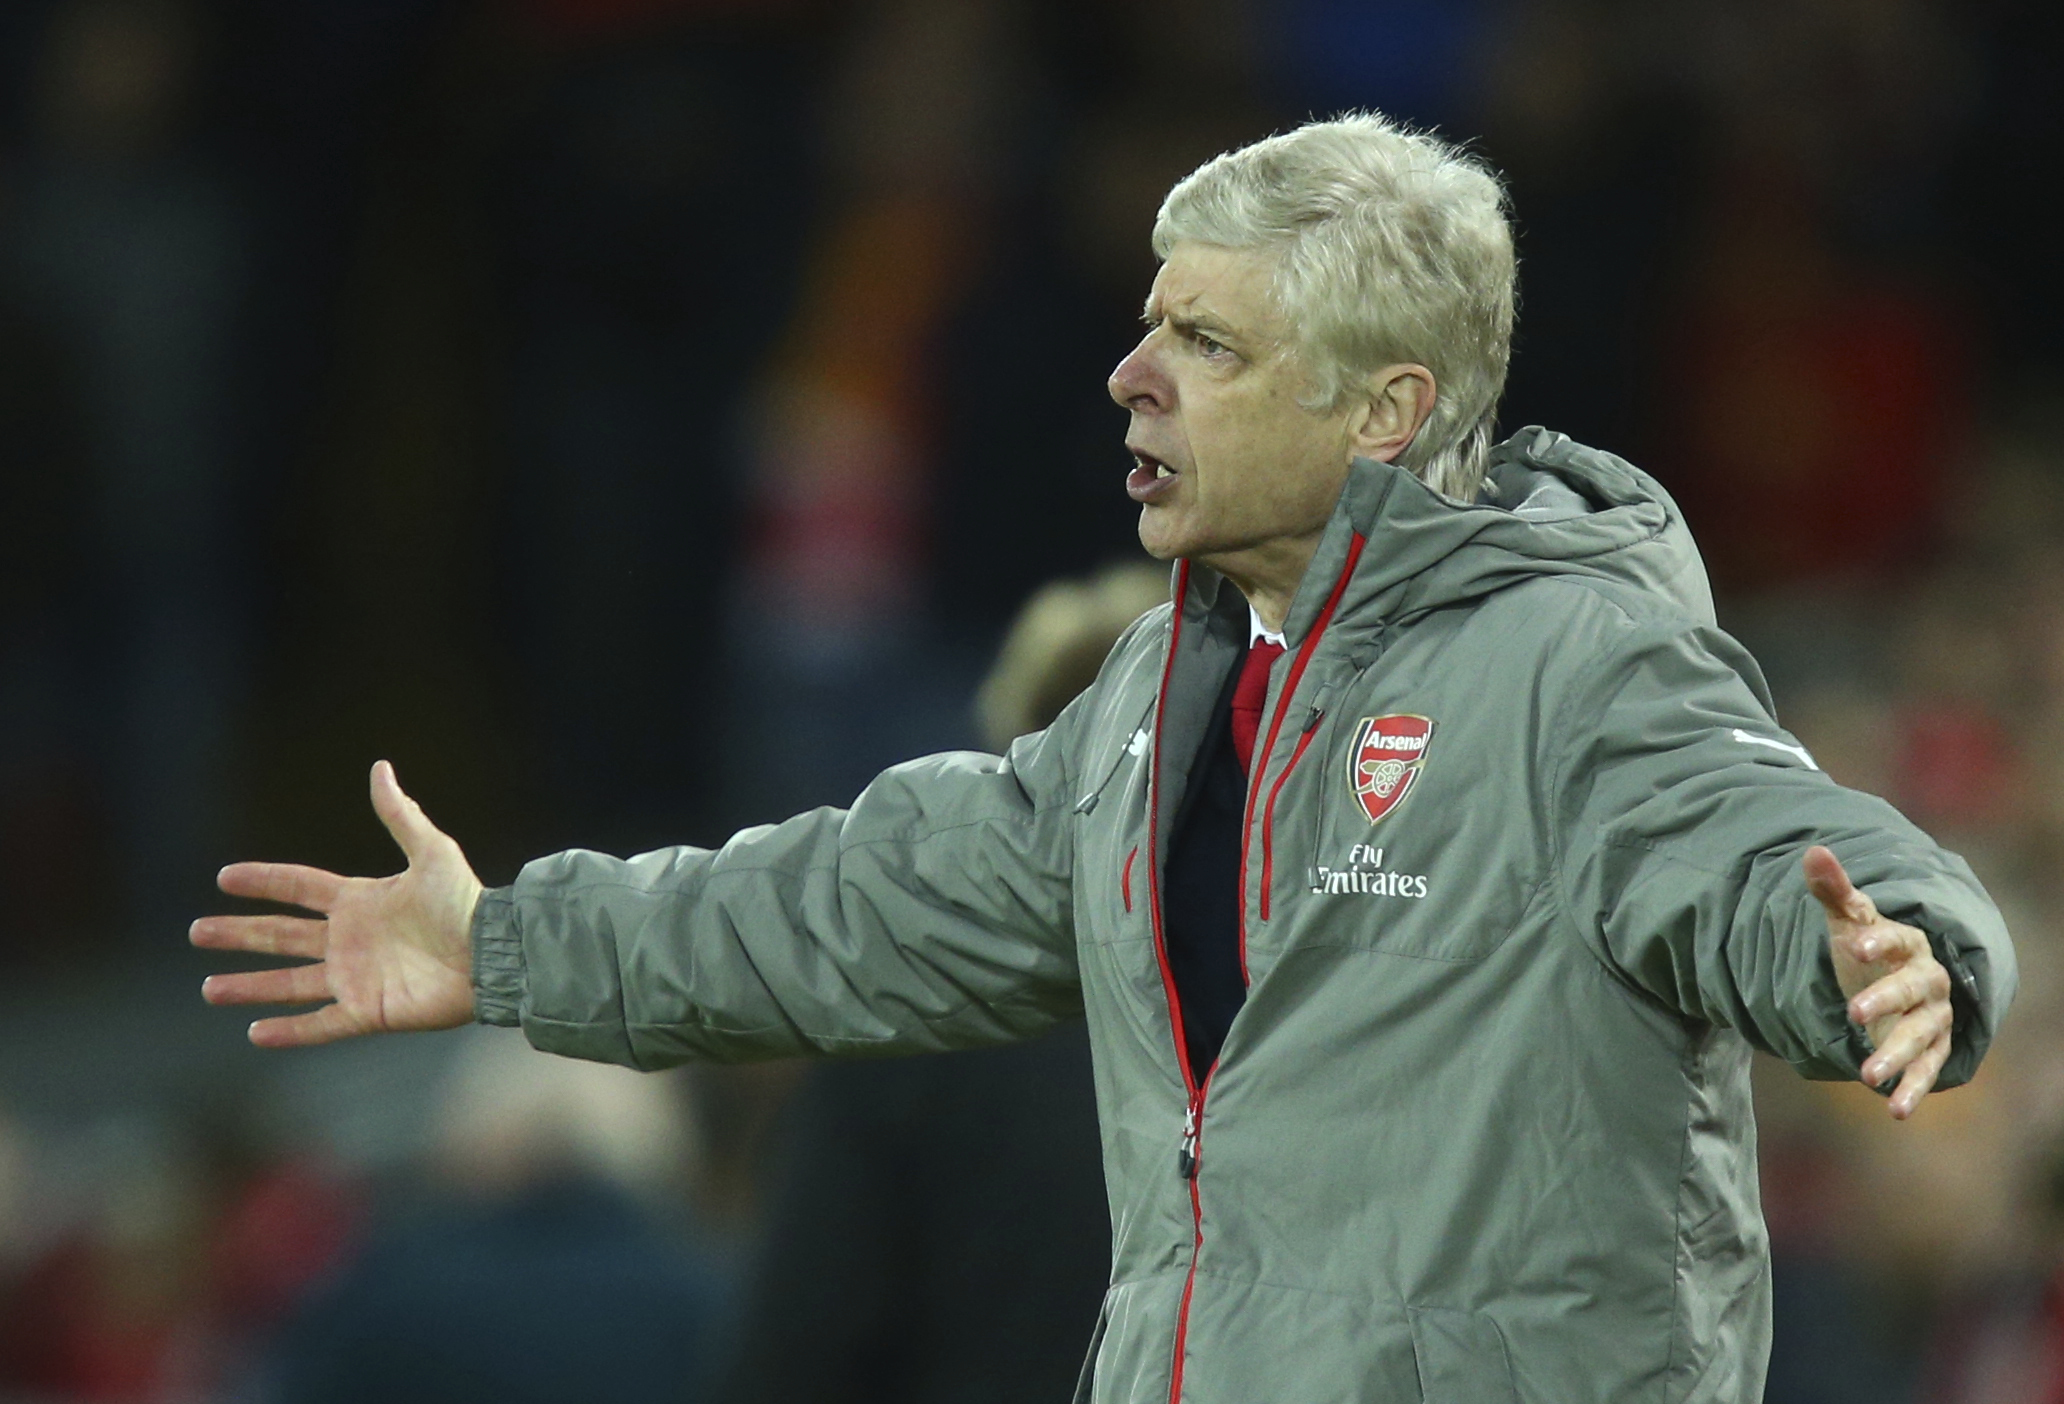 Arsene Wenger is facing some serious problems at Arsenal.